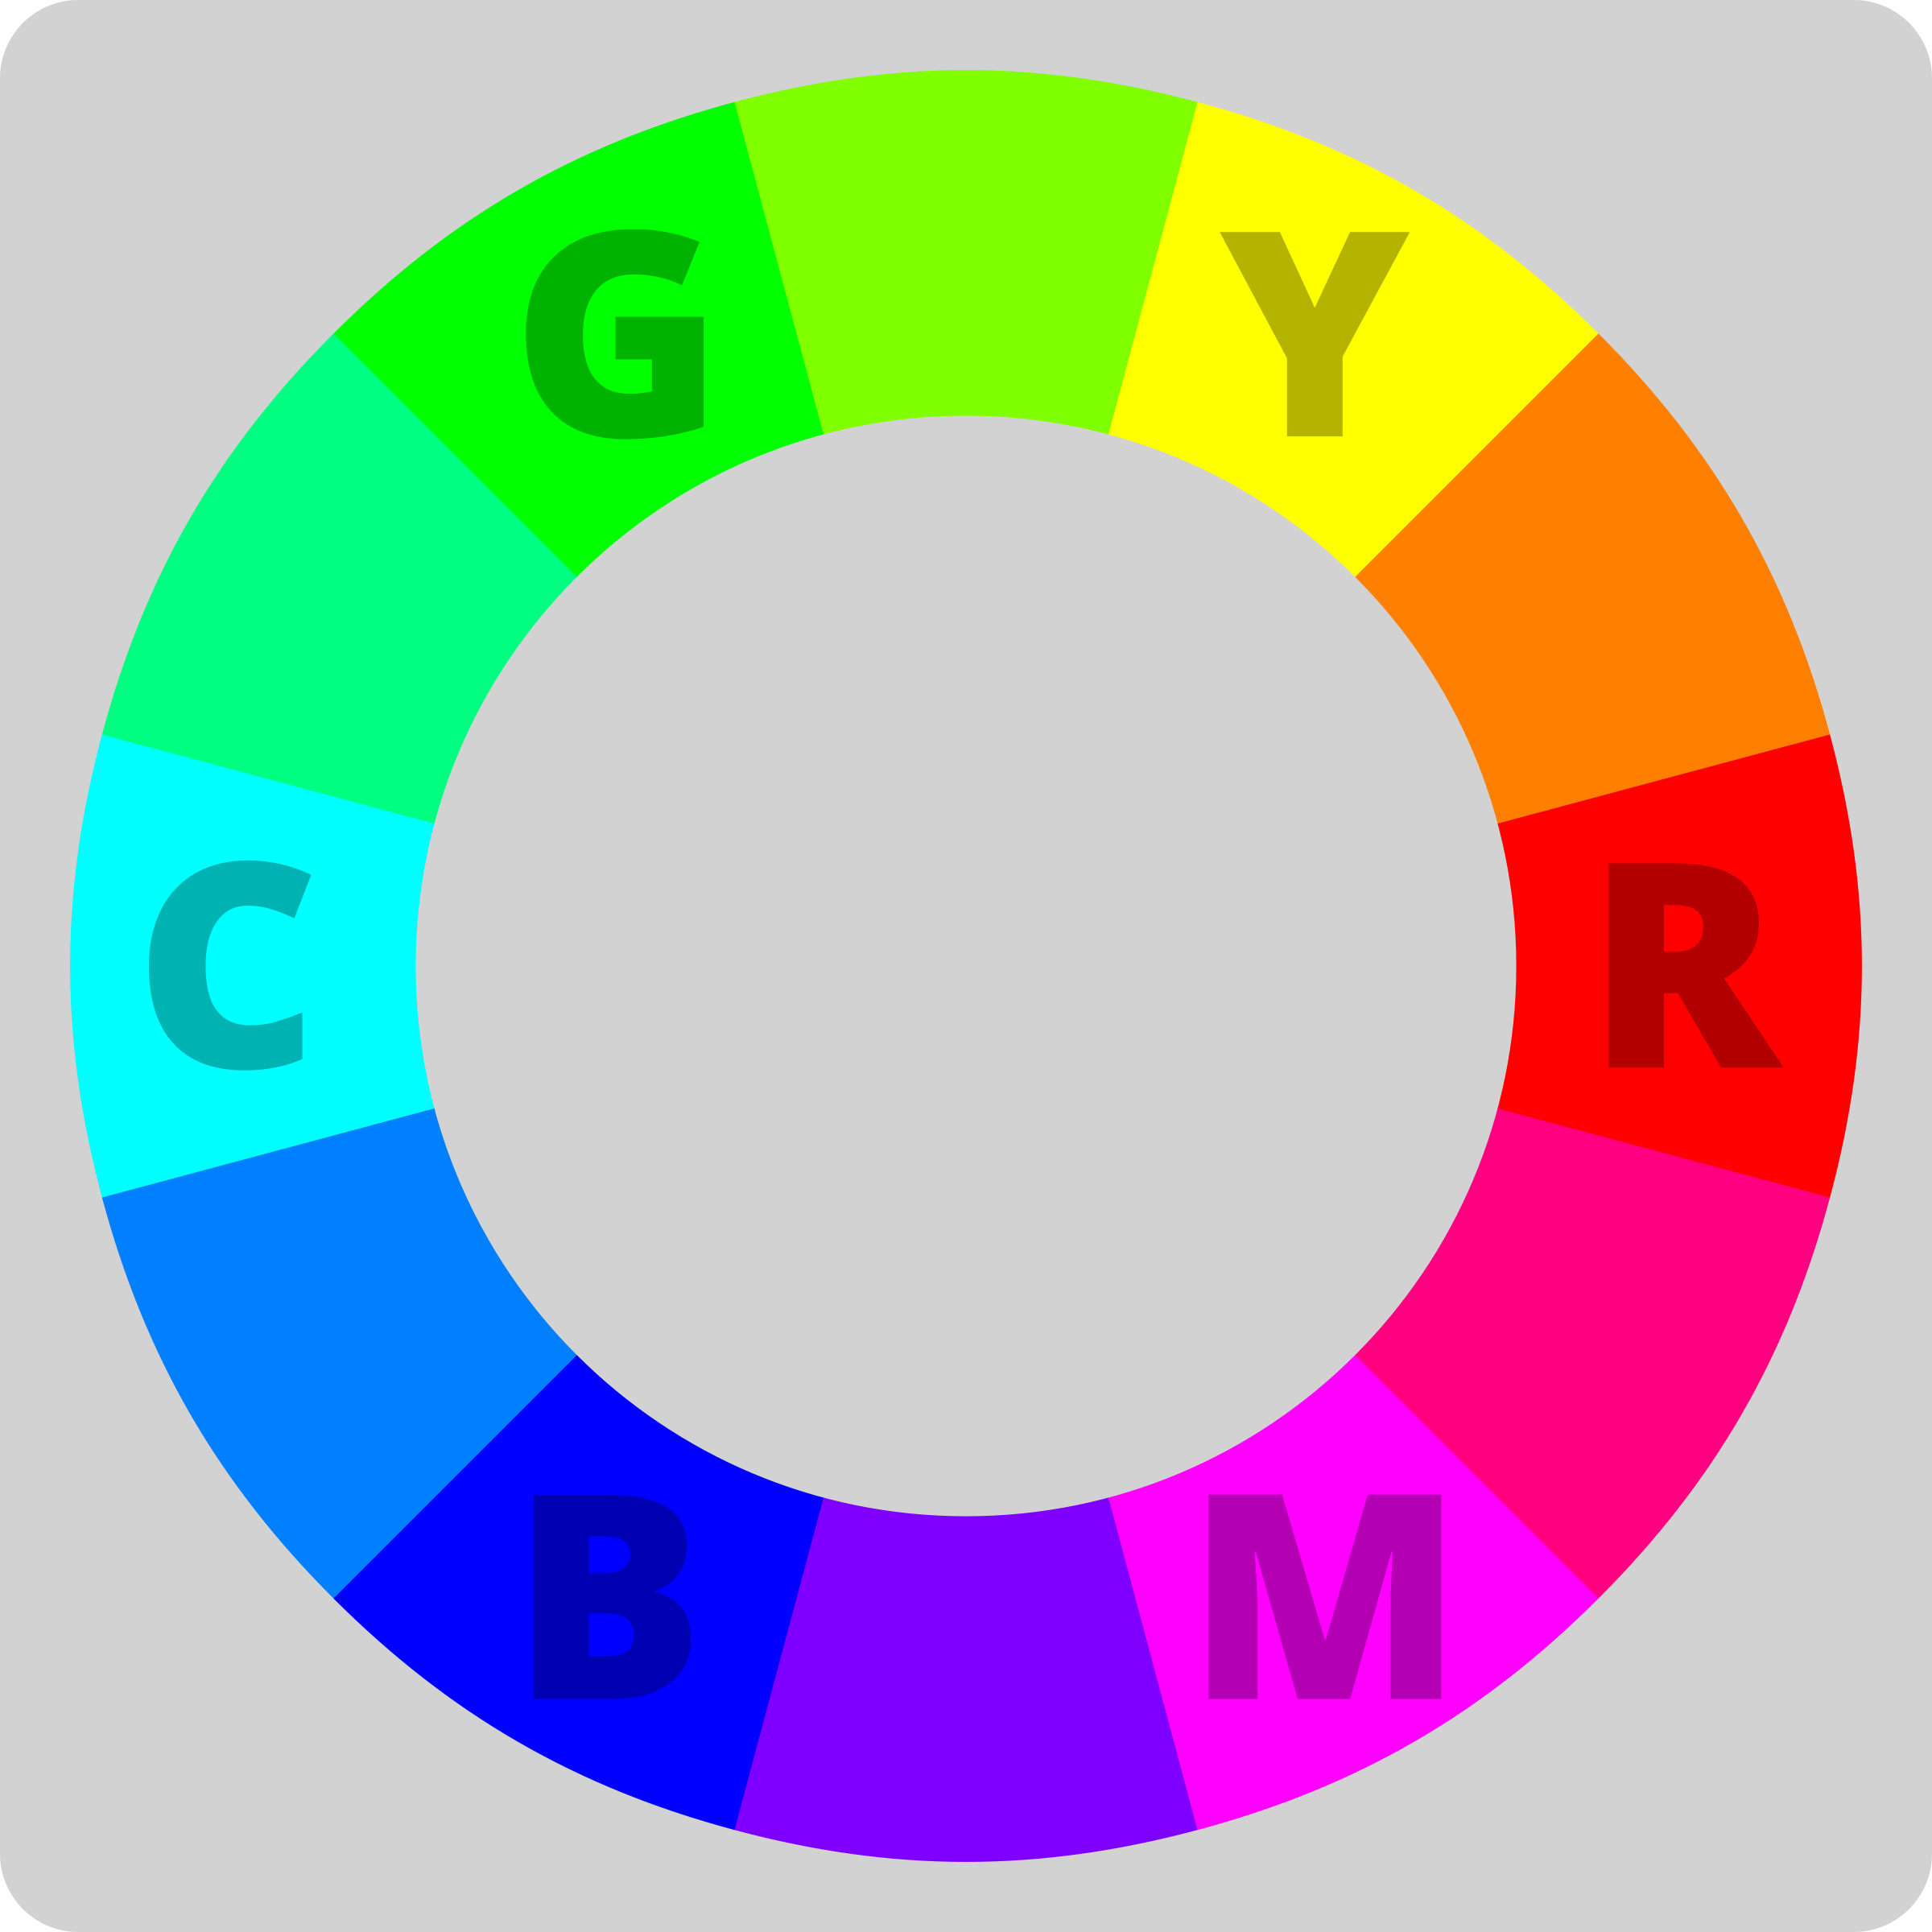 Color wheel by Todd Partridge - Gen2ly